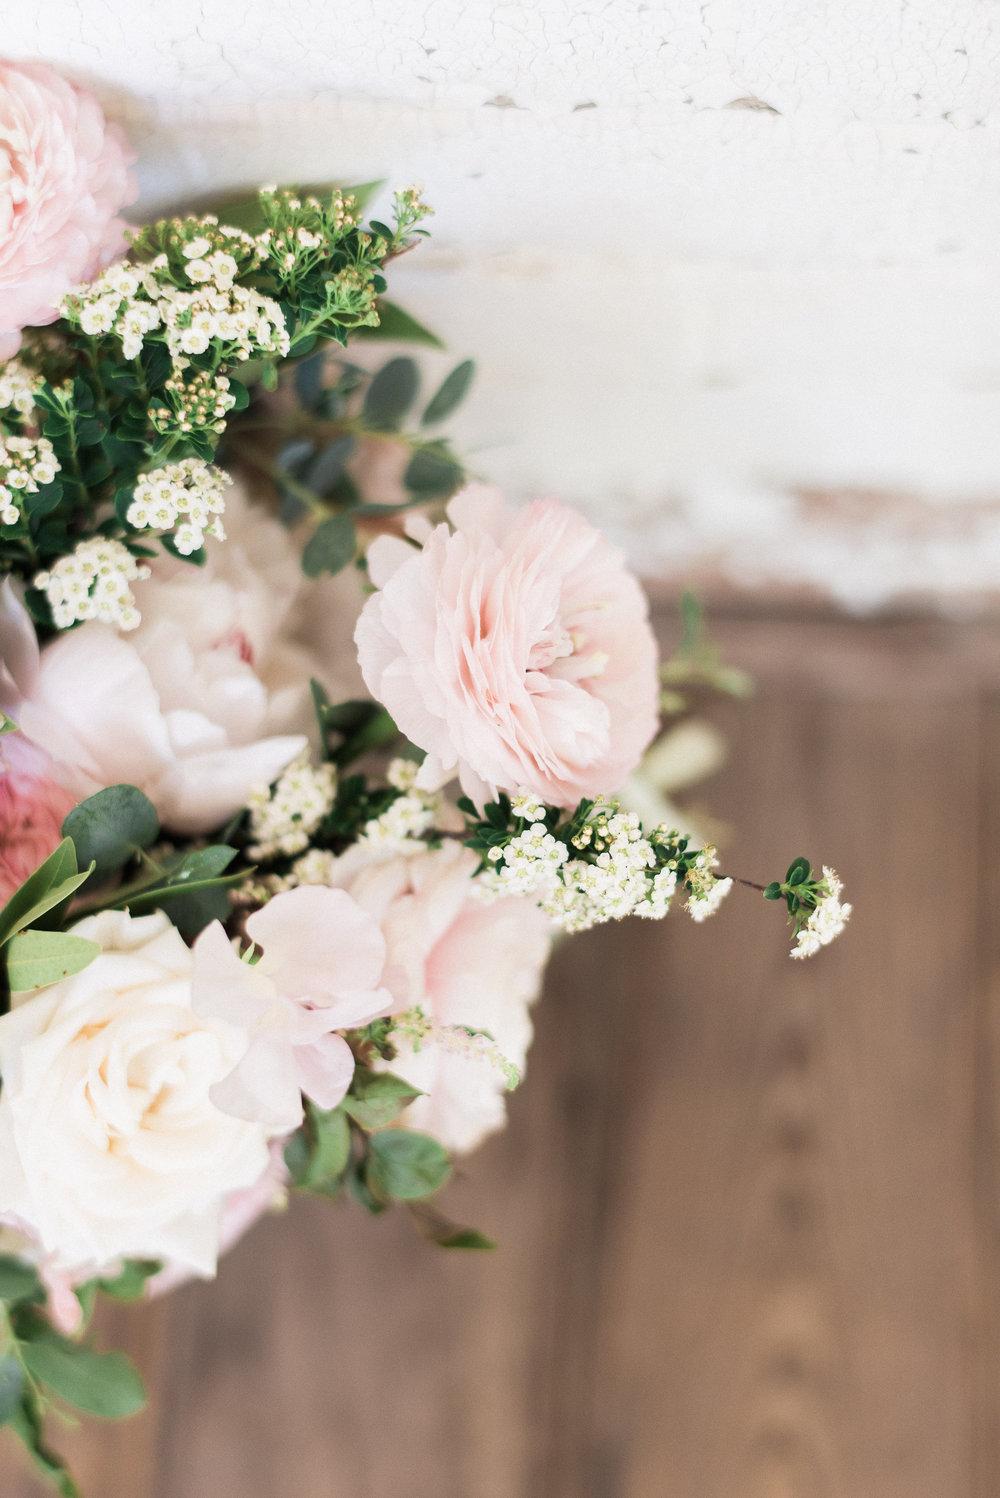 Blush and ivory bridal bouquet with peonies, ranunculus, and lush greenery // Nashville Wedding Florist